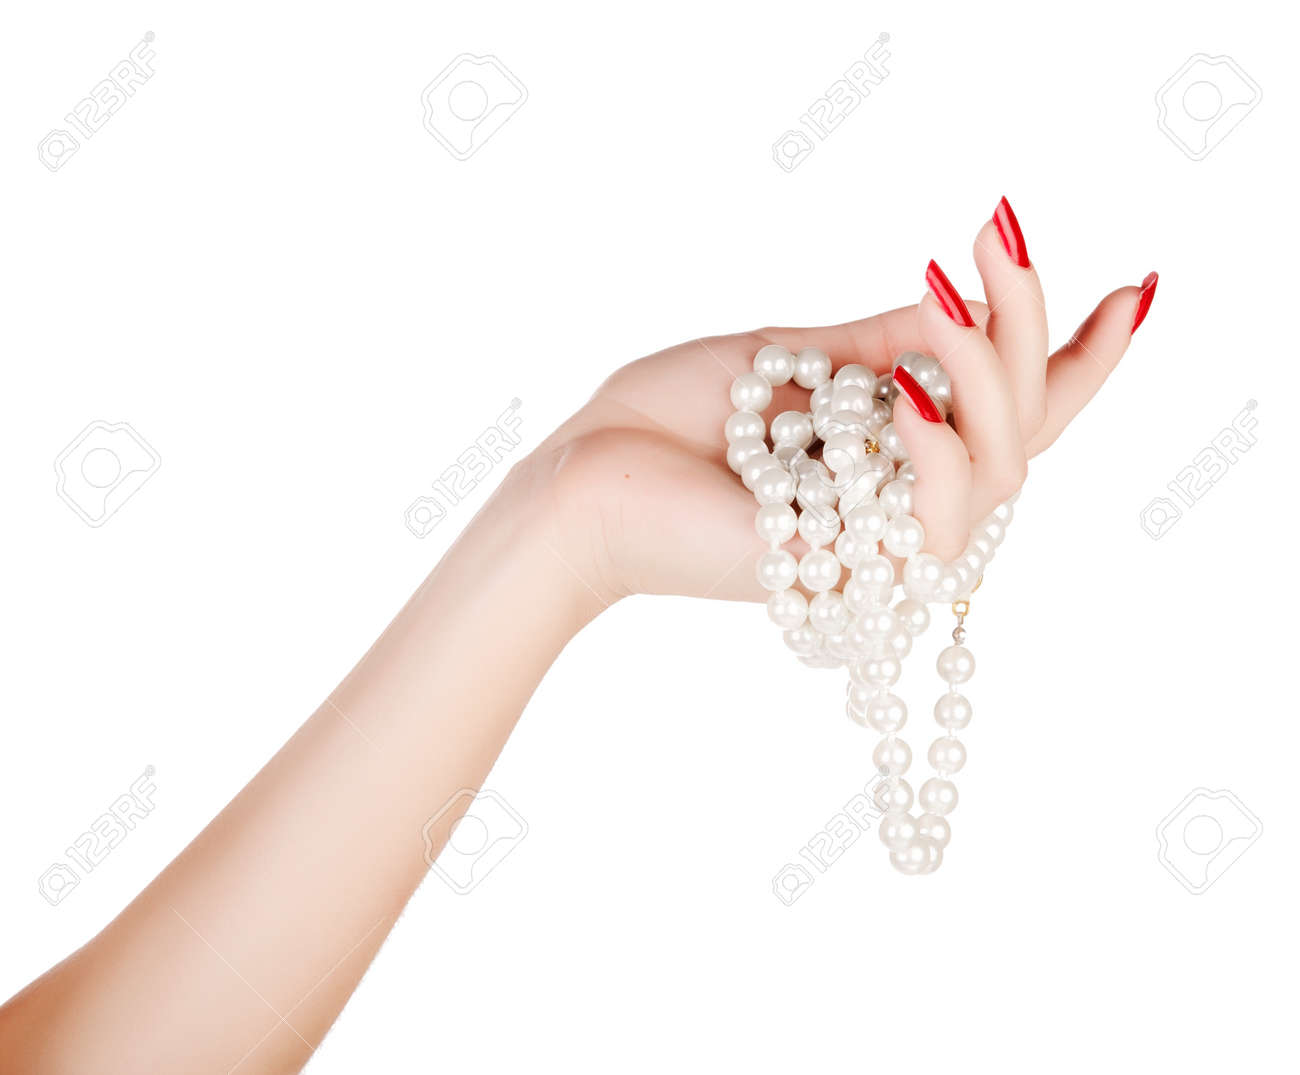 Stock Photo  Beautiful Hand Of A Young Woman With Red Manicure Holding  White Pearl Necklace On White Background